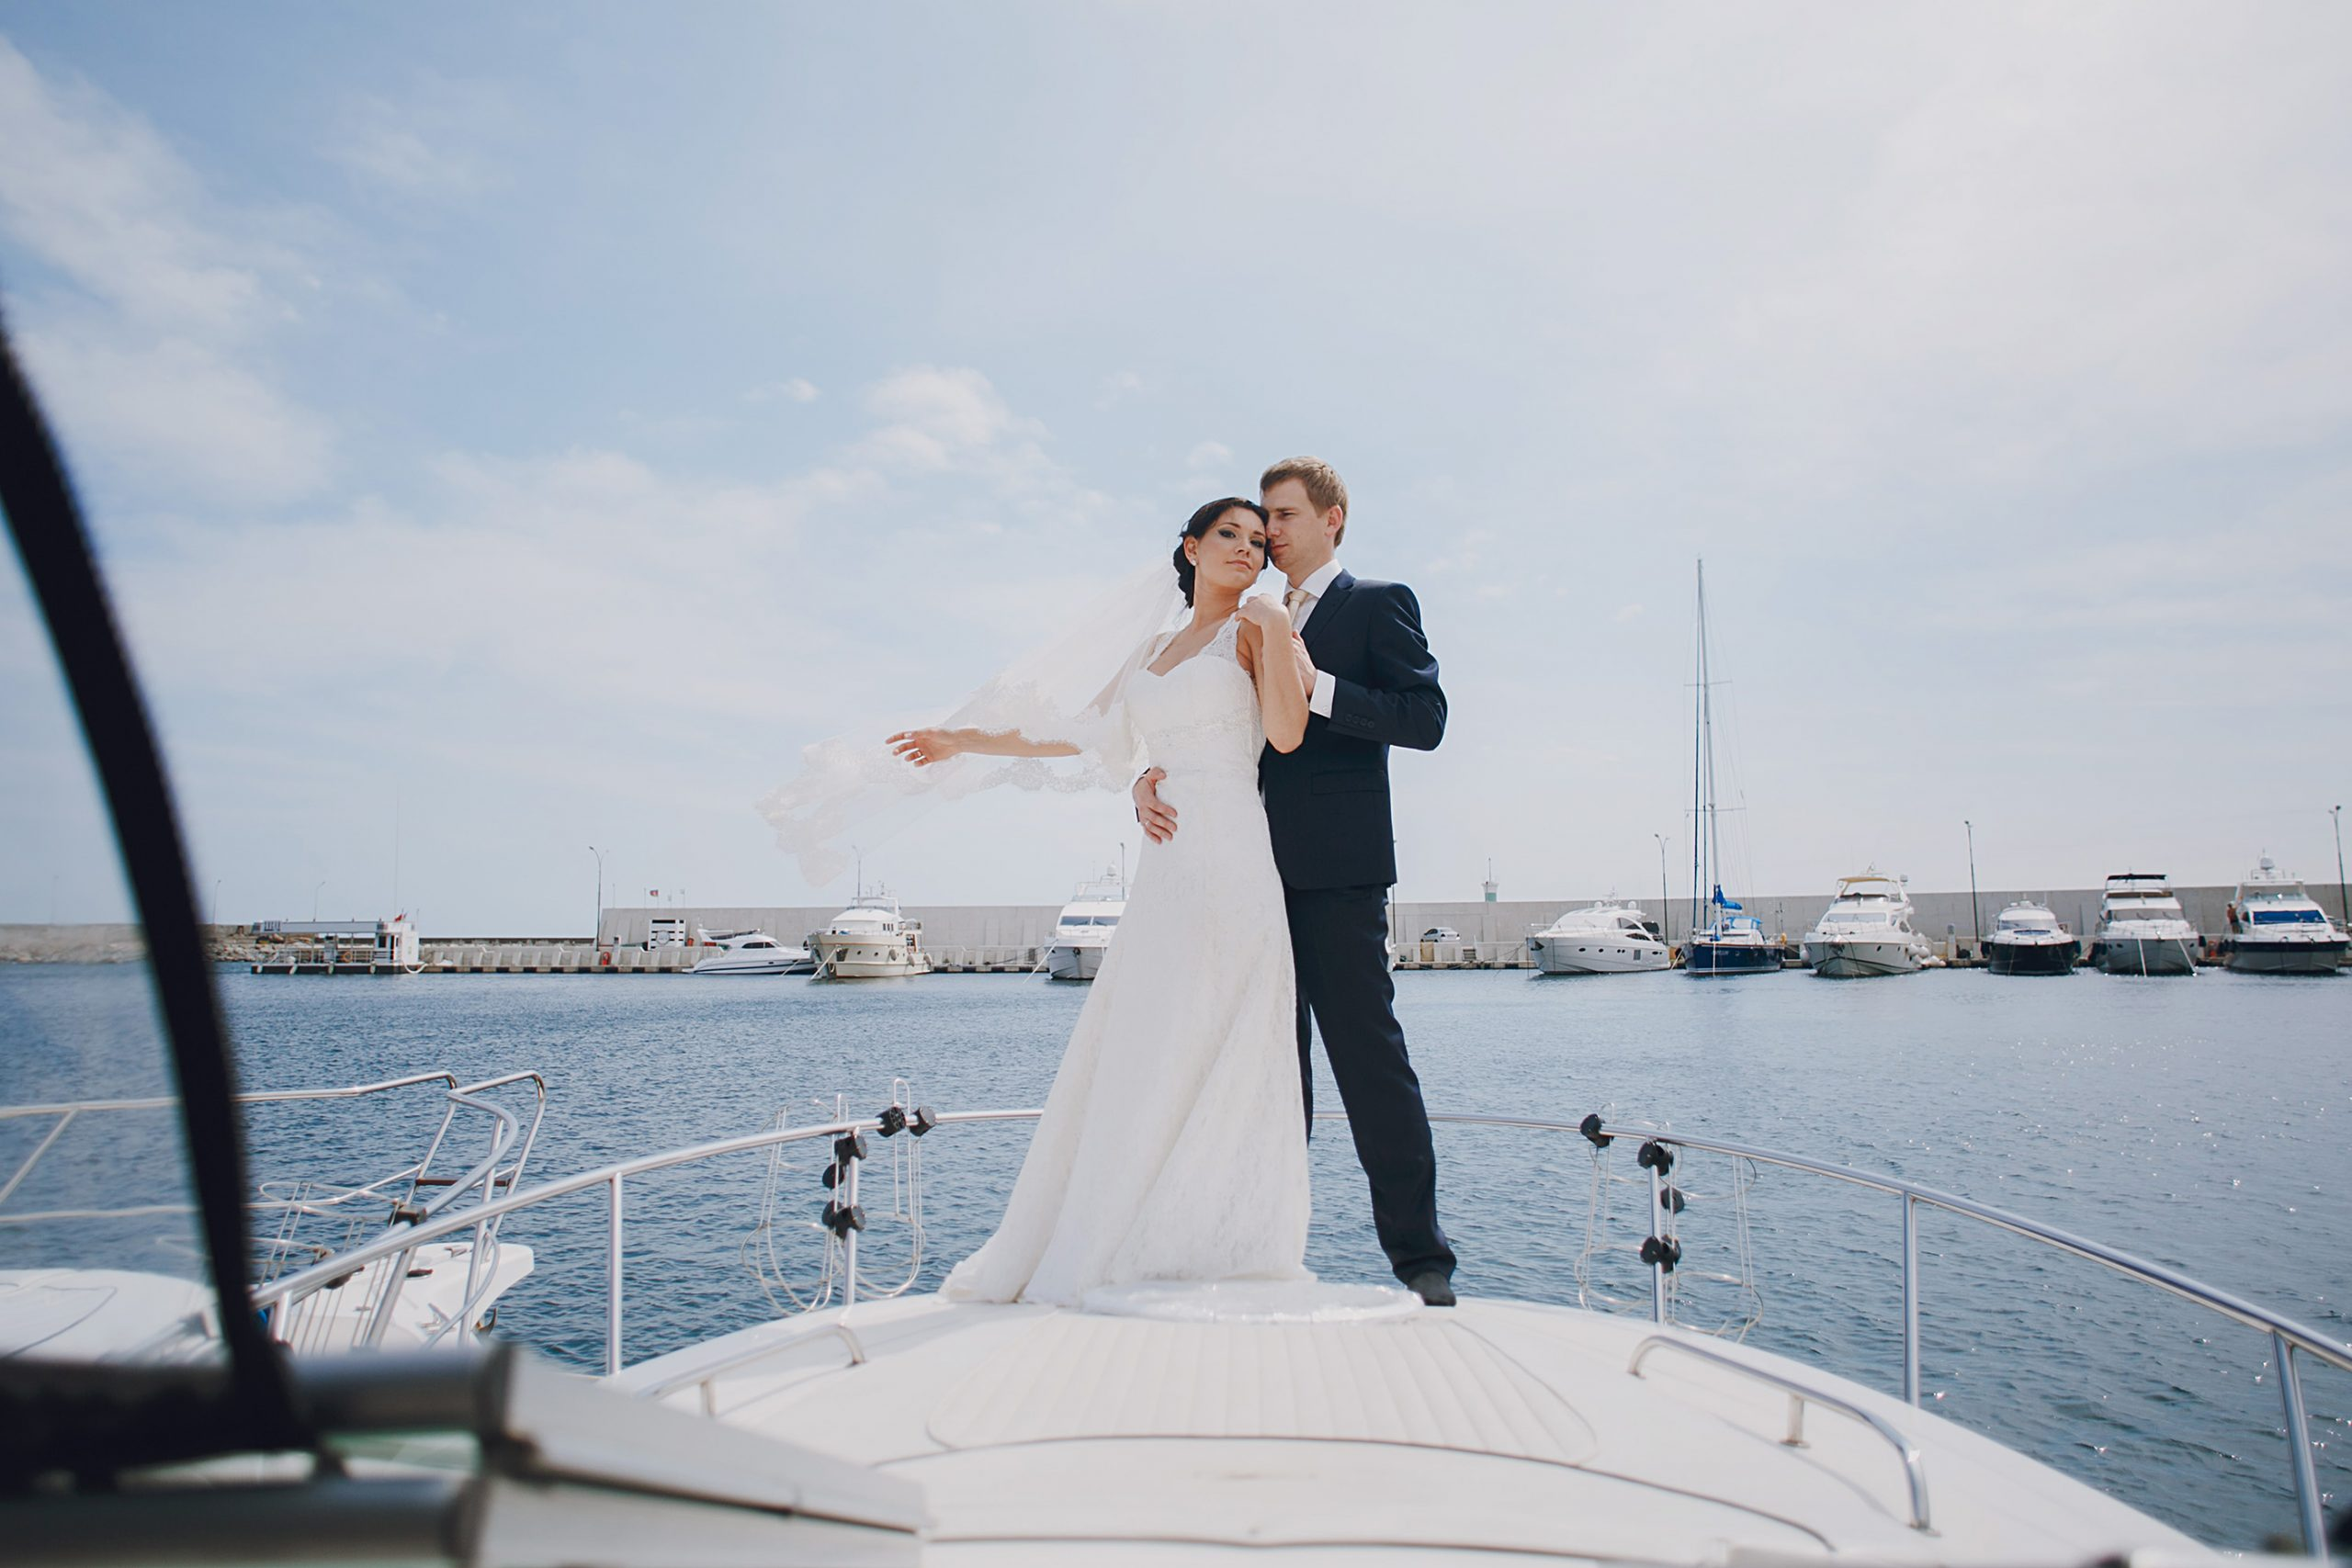 A Dream Wedding on a Luxury Yacht Charter